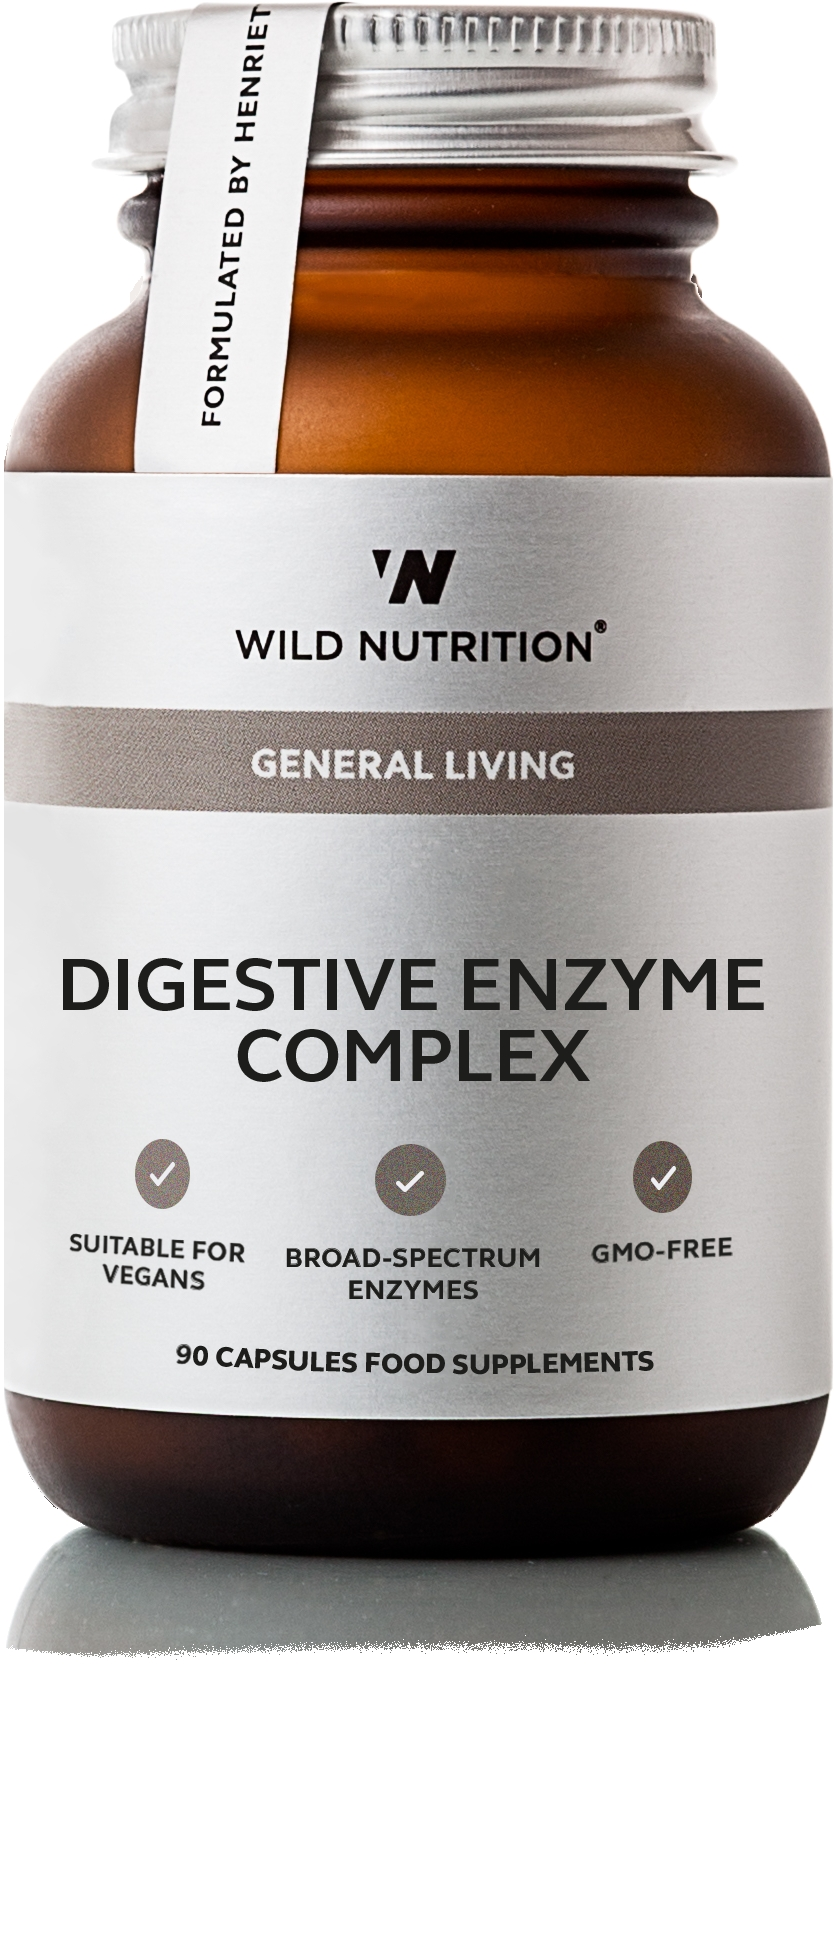 WNDE GL12 Digestive Enzyme Complex S 20180818 142214